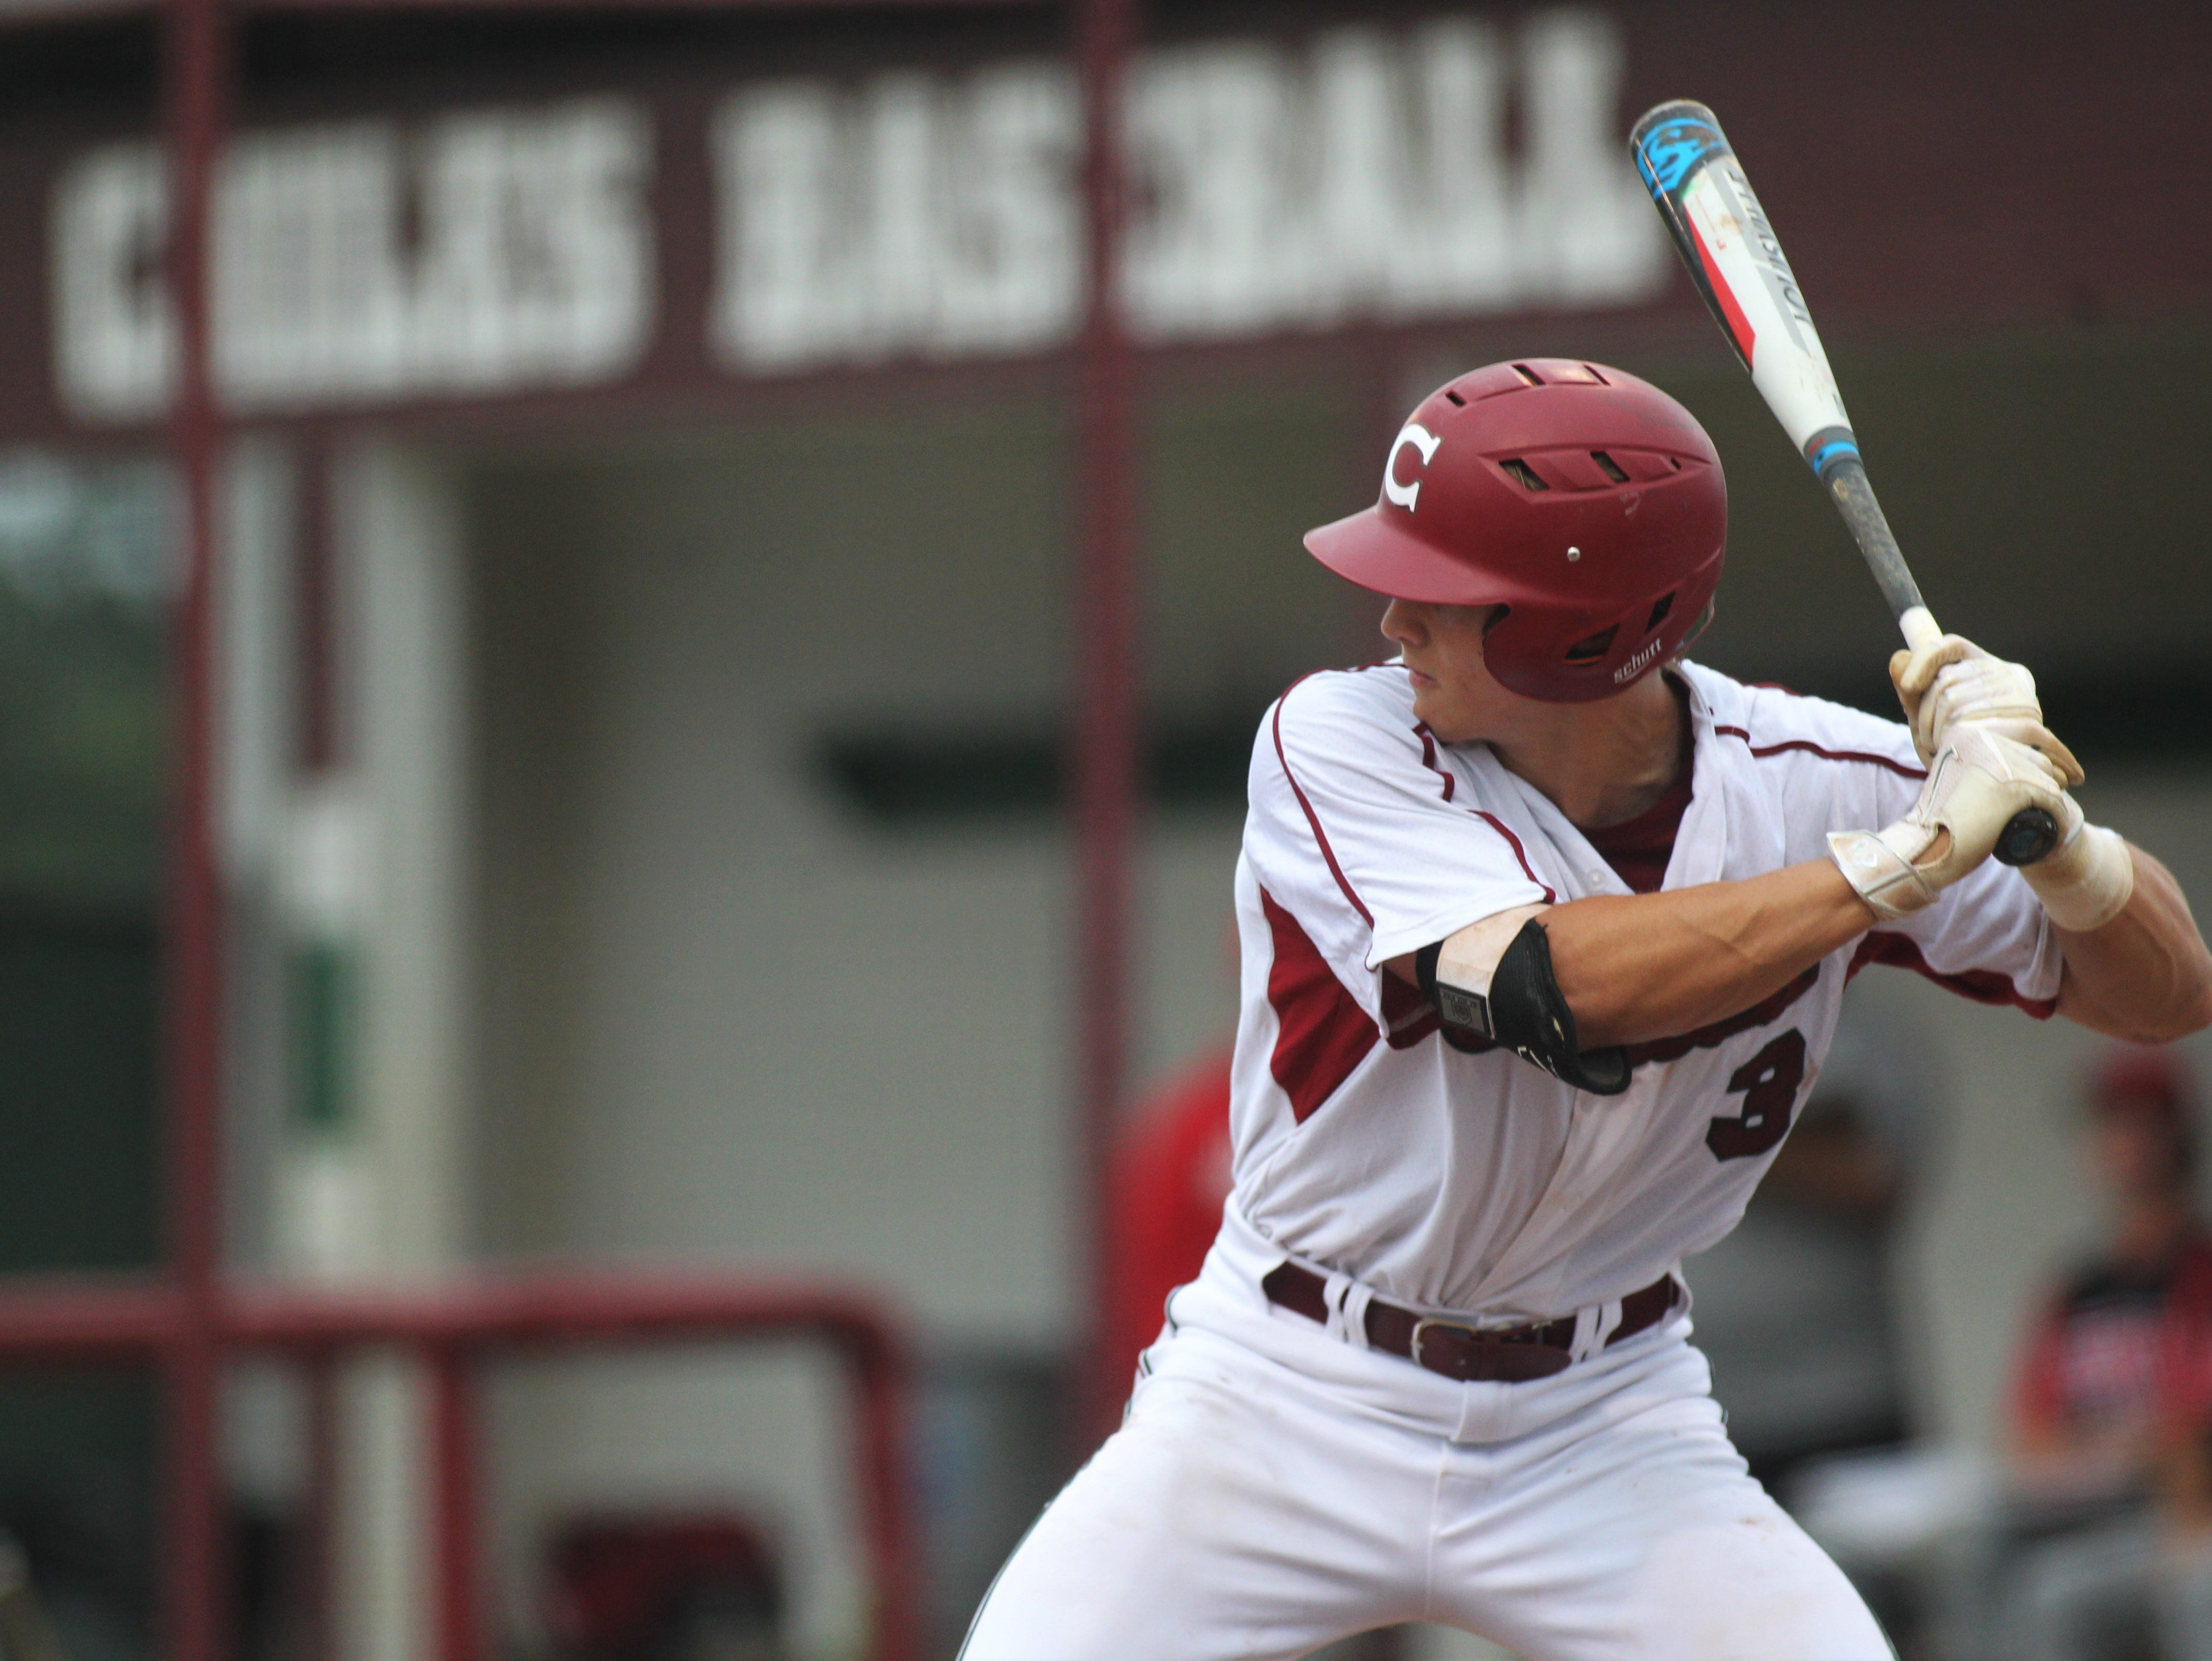 Chiles junior Garrett Greene bats as Chiles won an 11-6 home game against Leon on Friday, April 5, 2019, to force a season split. The Lions won 3-0 earlier in the week.